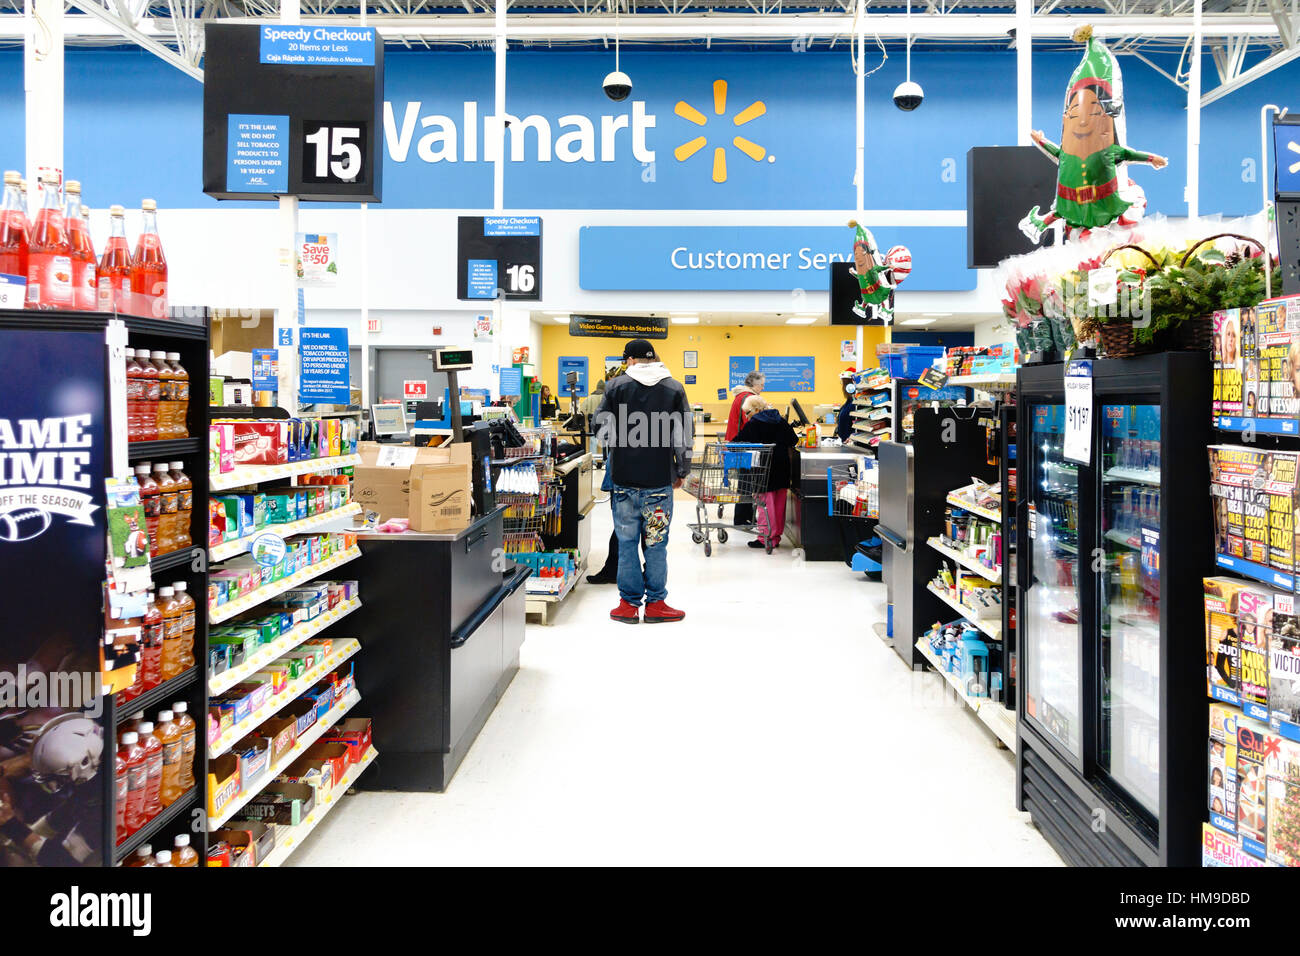 Mar 14, · Watch video· Shoppers can make their purchases on the grocery section of Walmart's website or through the Walmart Grocery app. A minimum purchase of $30 is required, and customers will pay a $ delivery fee.